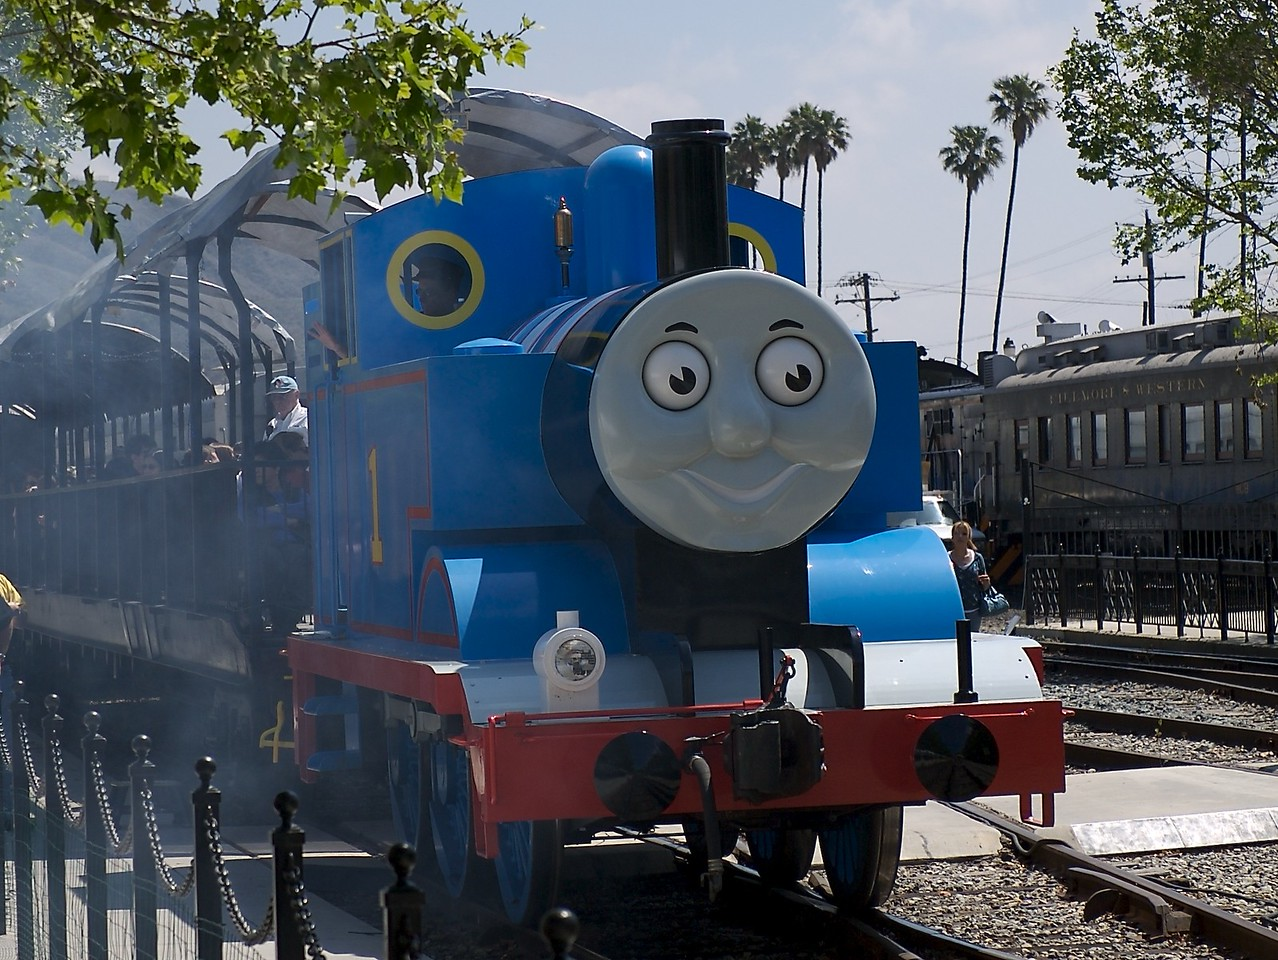 We didn't ride the train because Cody is too little and we could ride the train next year.